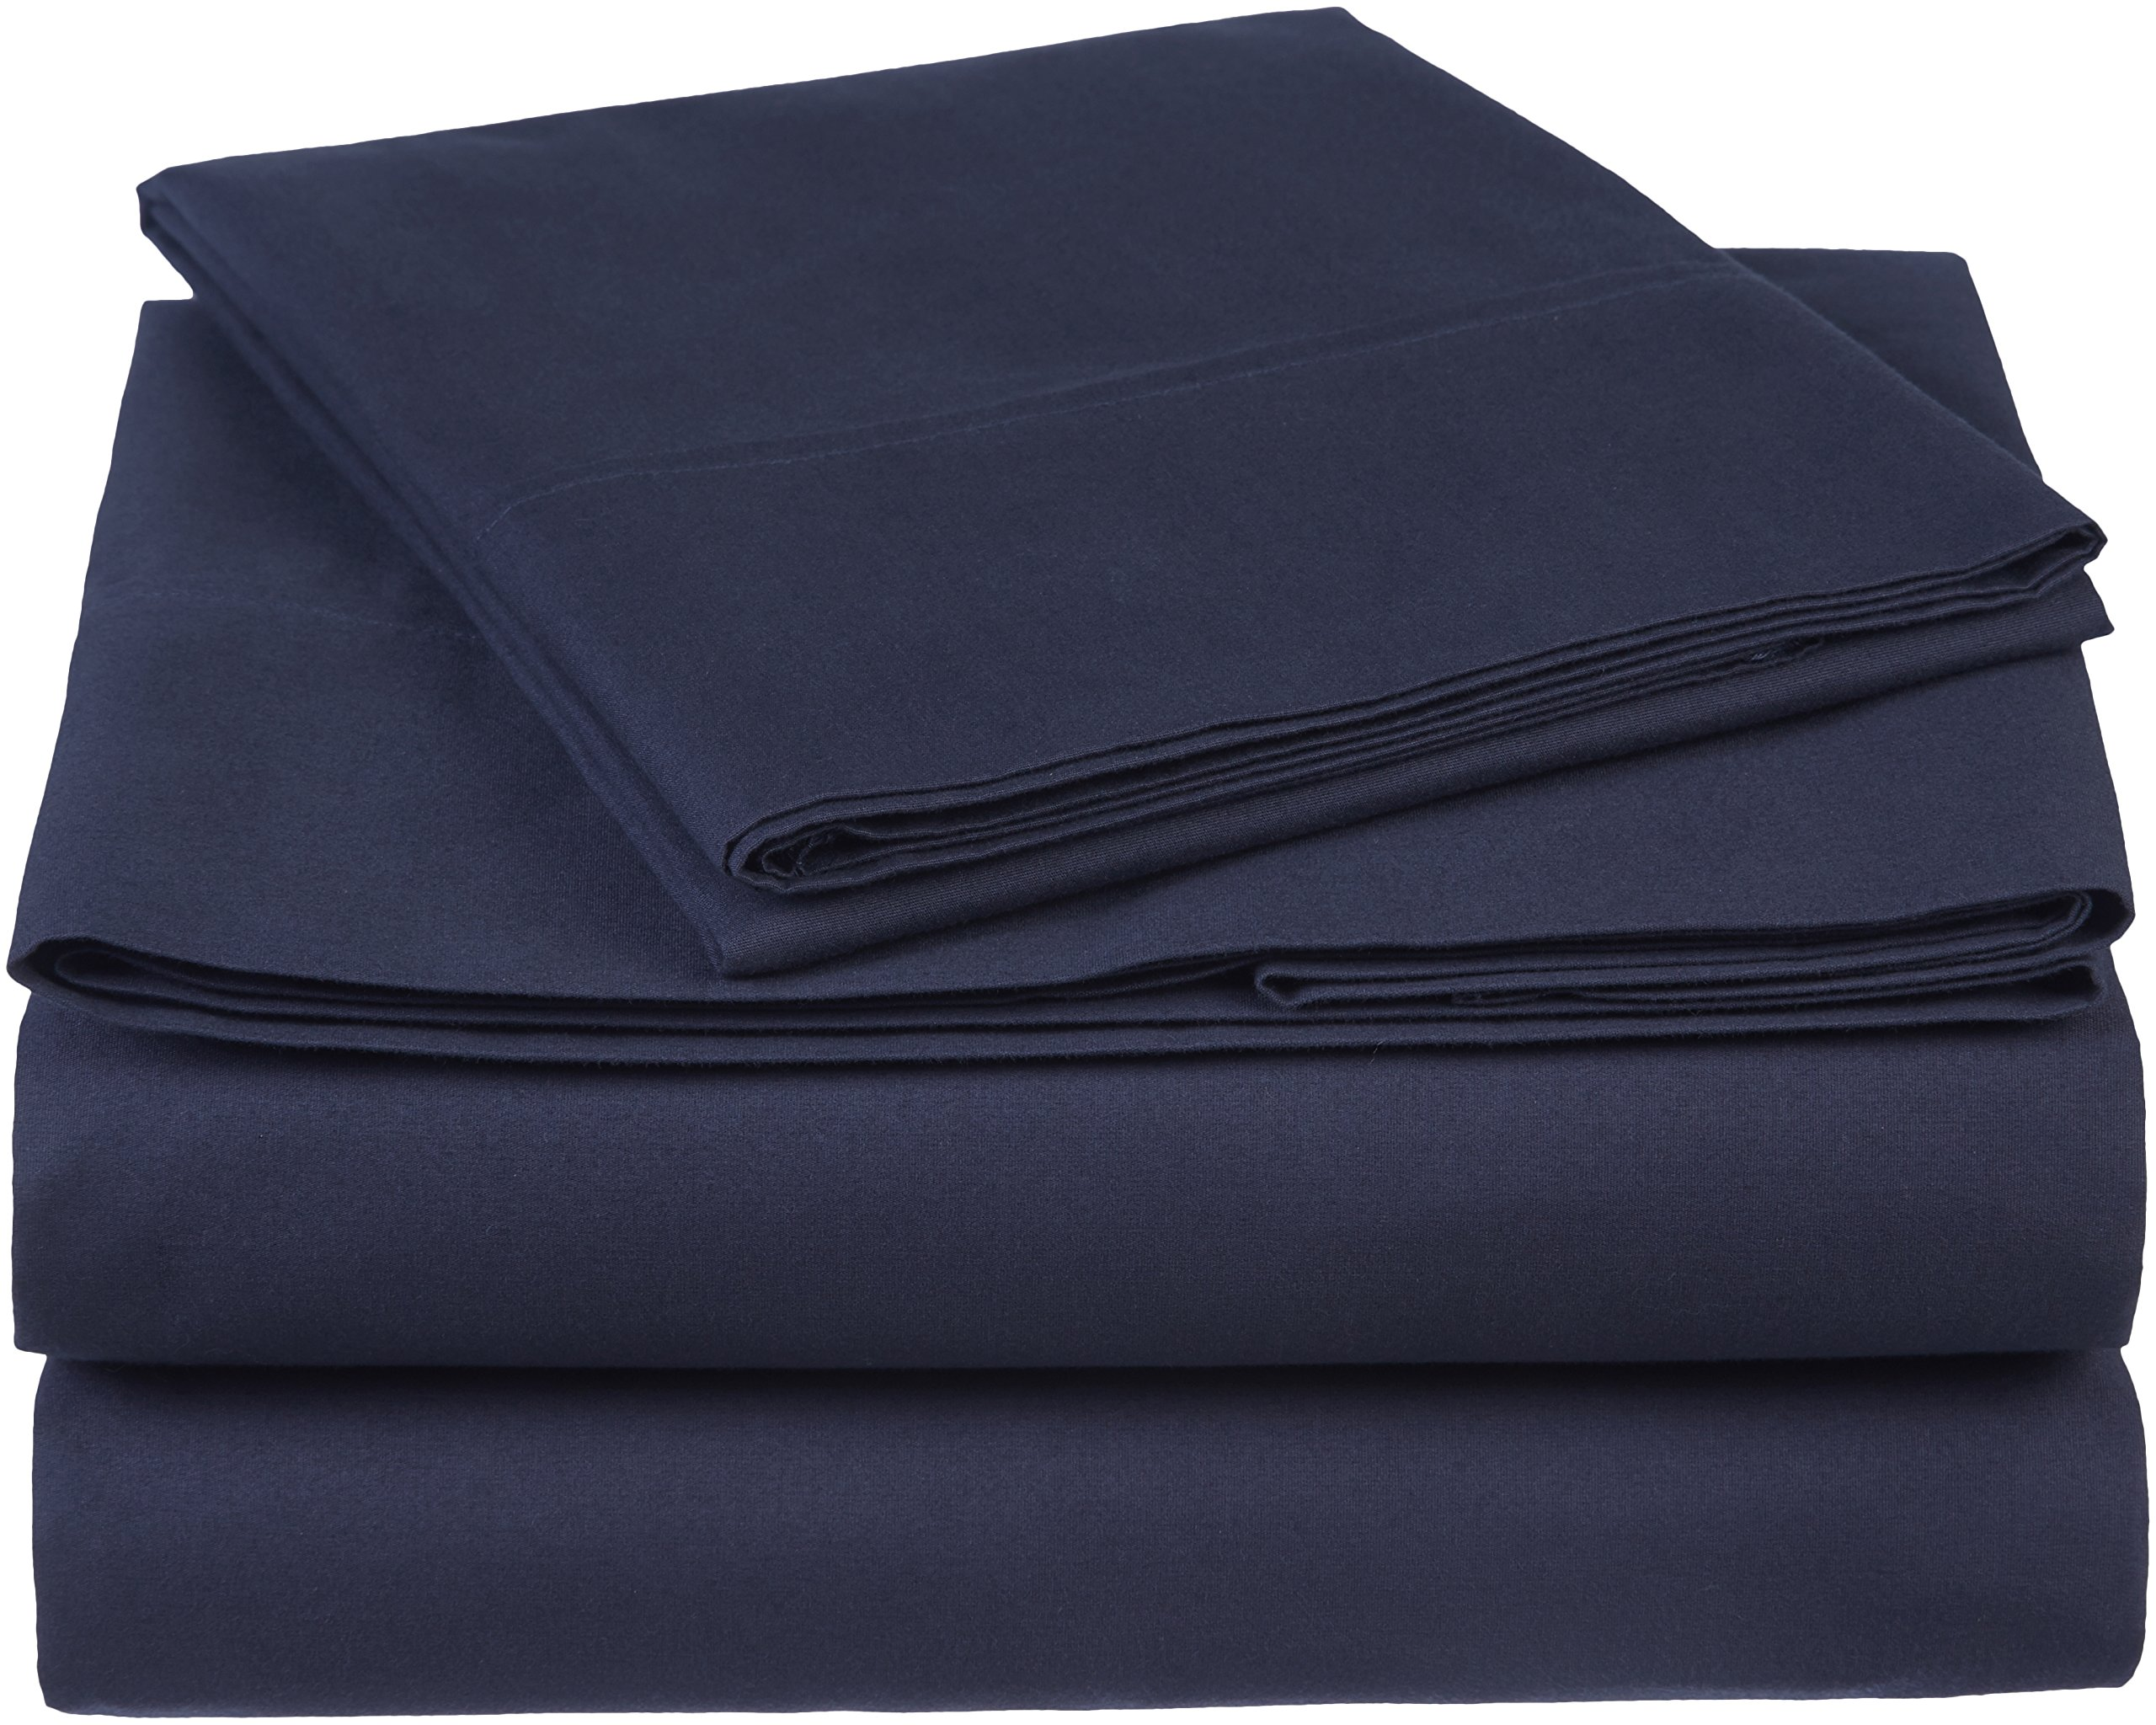 Pinzon 300 Thread Count Organic Cotton Sheet Set - Twin, Navy Blue